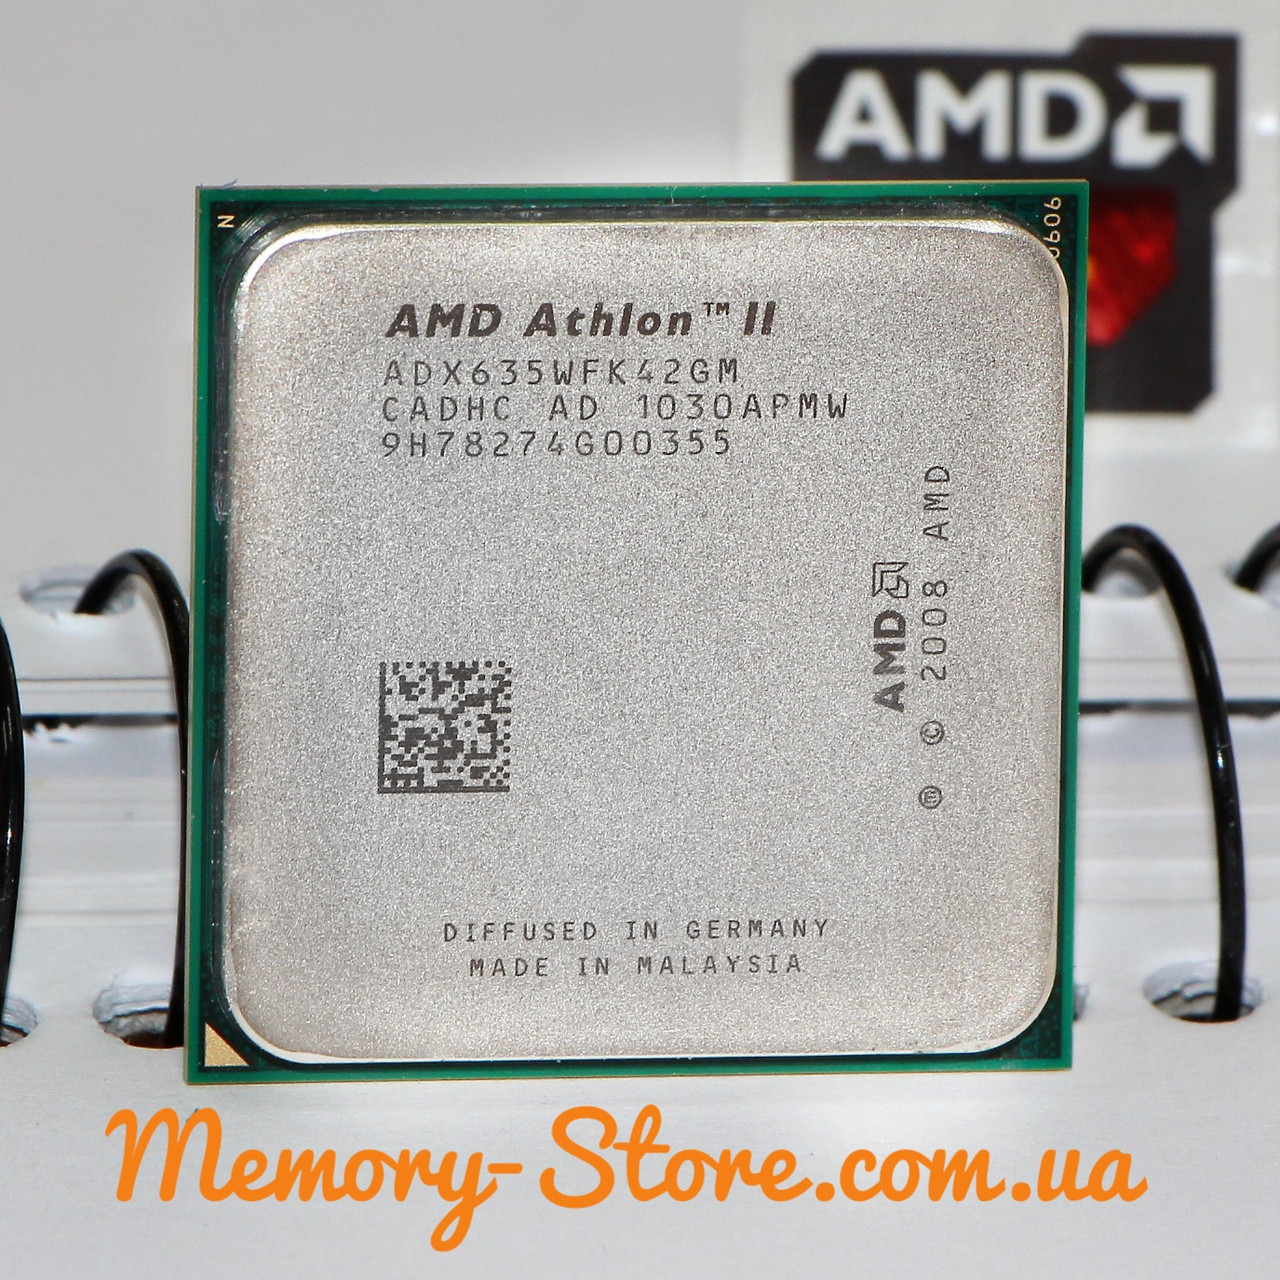 Процессор AMD Athlon II X4 635 2.9GHz, 95W + термопаста GD900